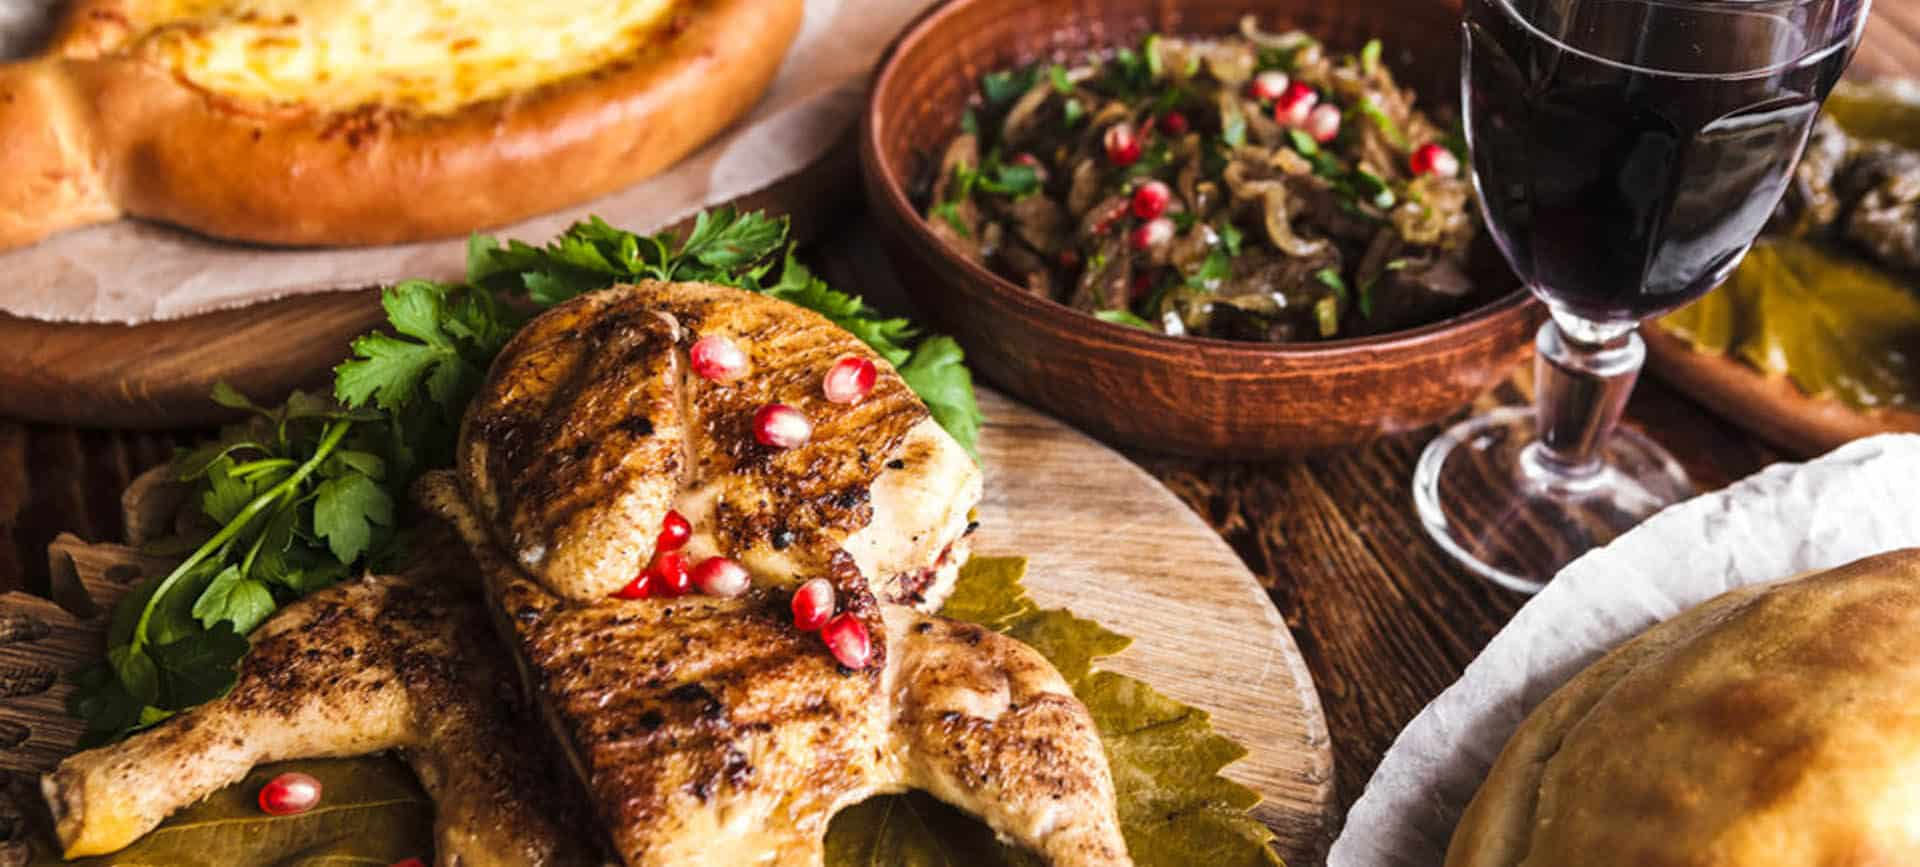 restaurant provides a taste of Georgia